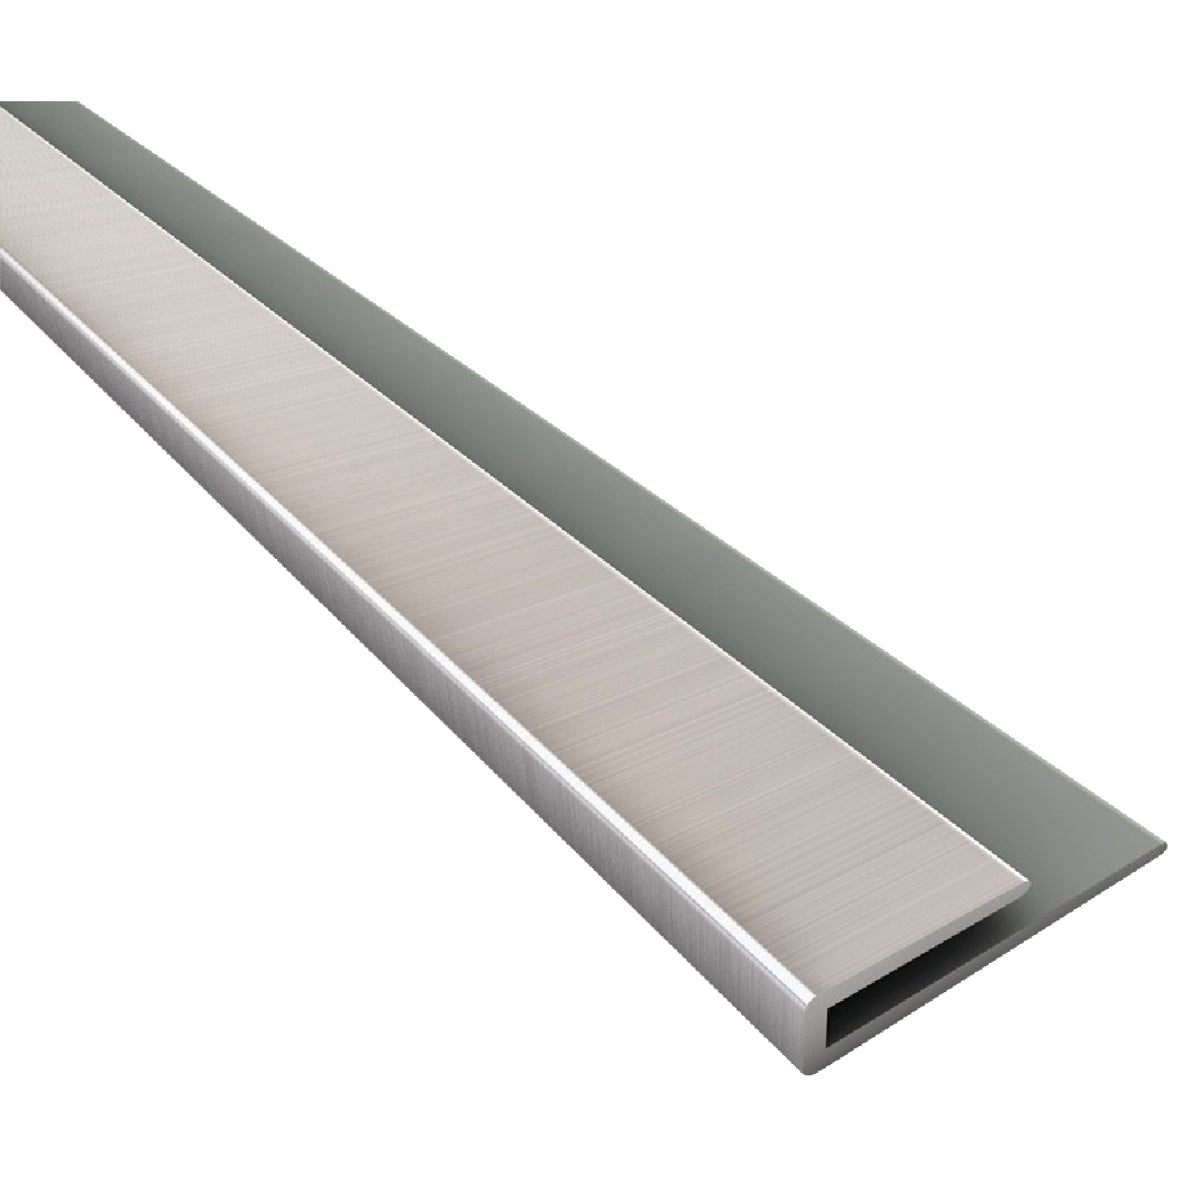 BR NICKEL EDGE J TRIM - 923-29 by Acp